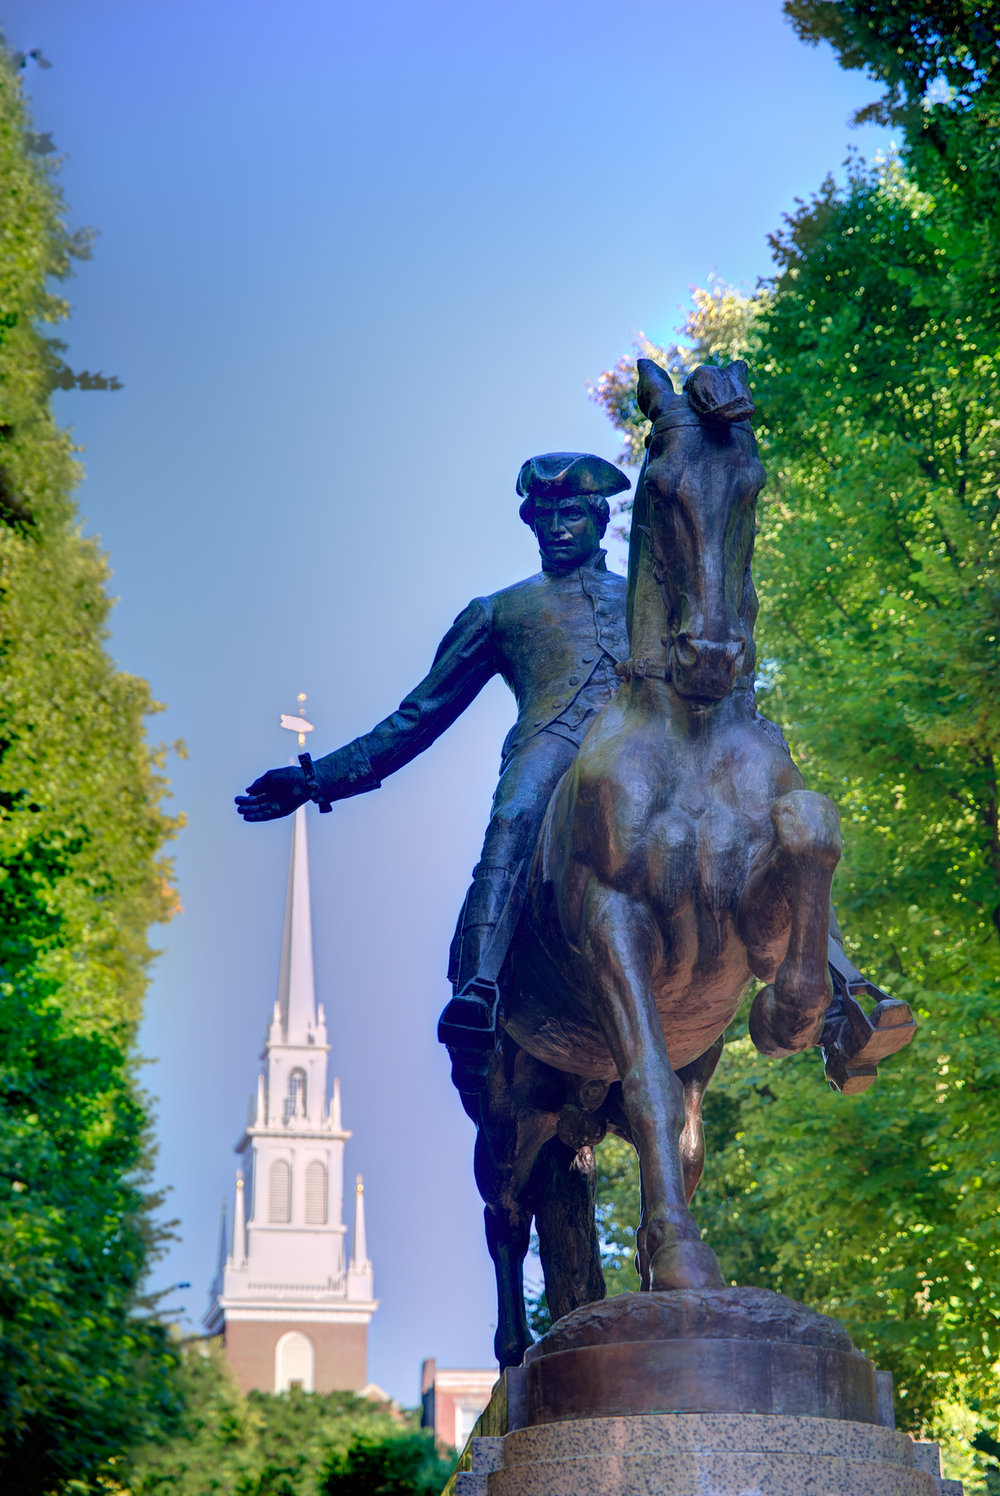 048762023-boston-paul-revere-mall-statue.jpeg